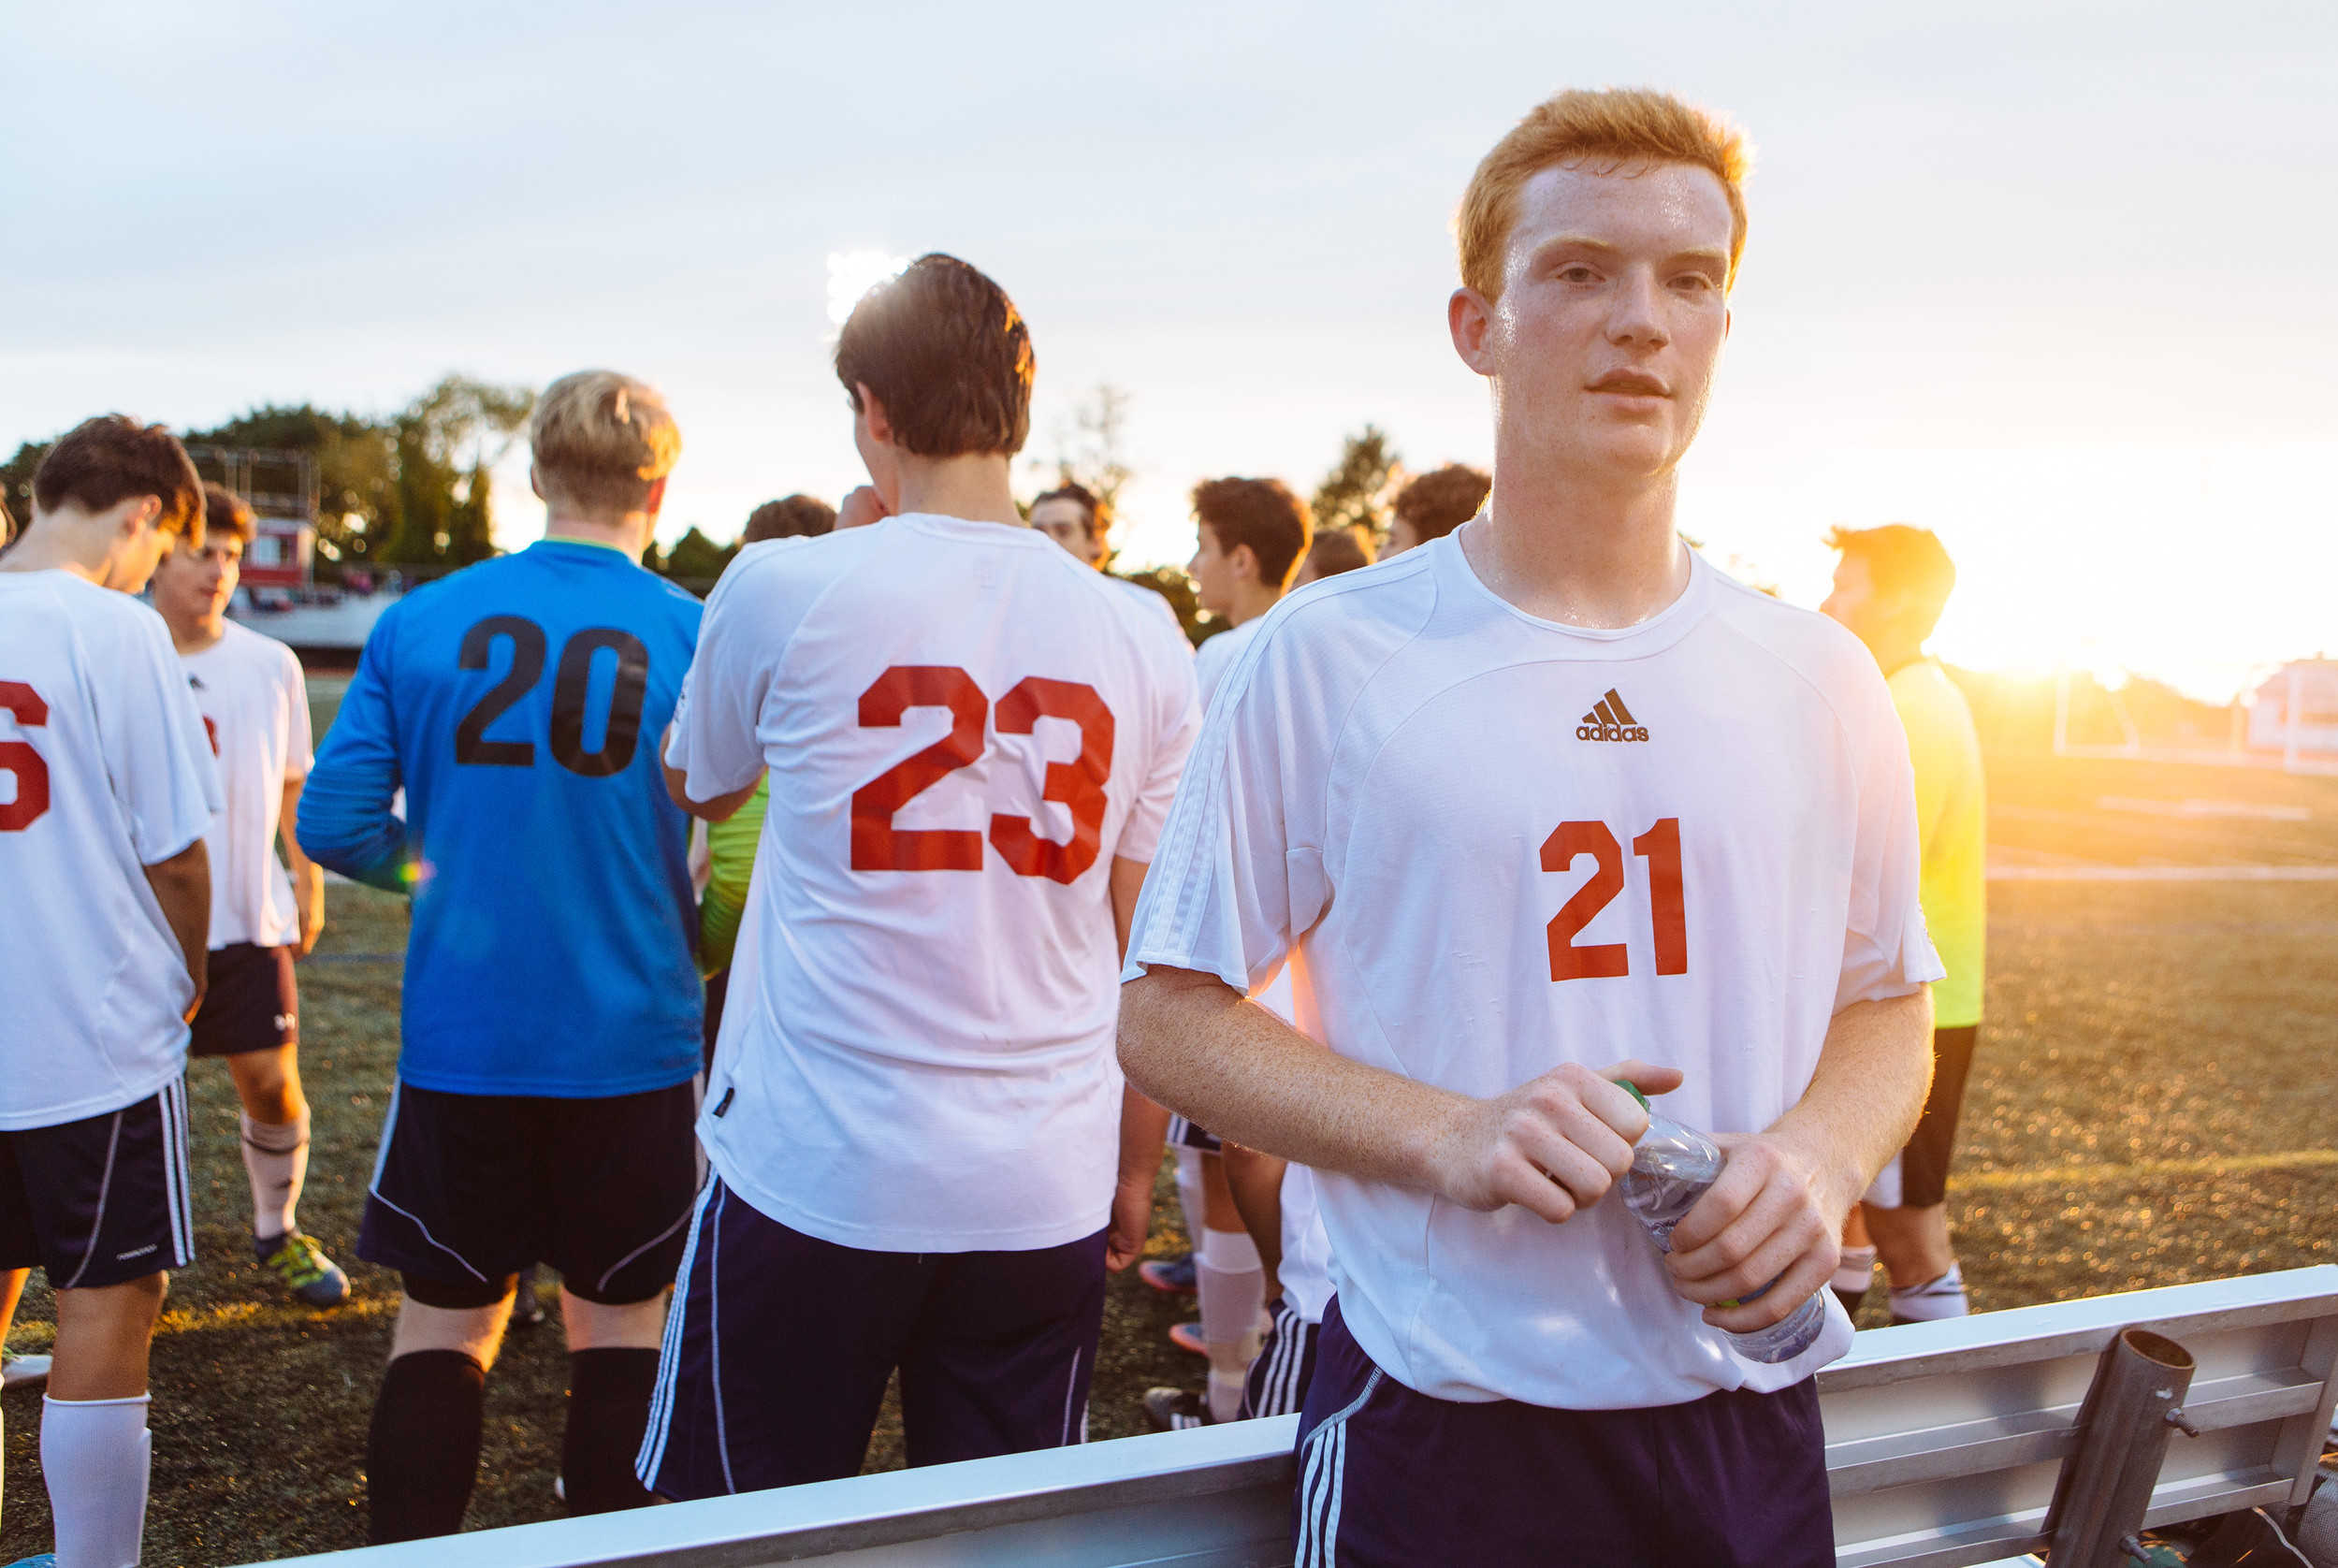 John Stack organized the alumni soccer game for his senior project at Portsmouth High School.